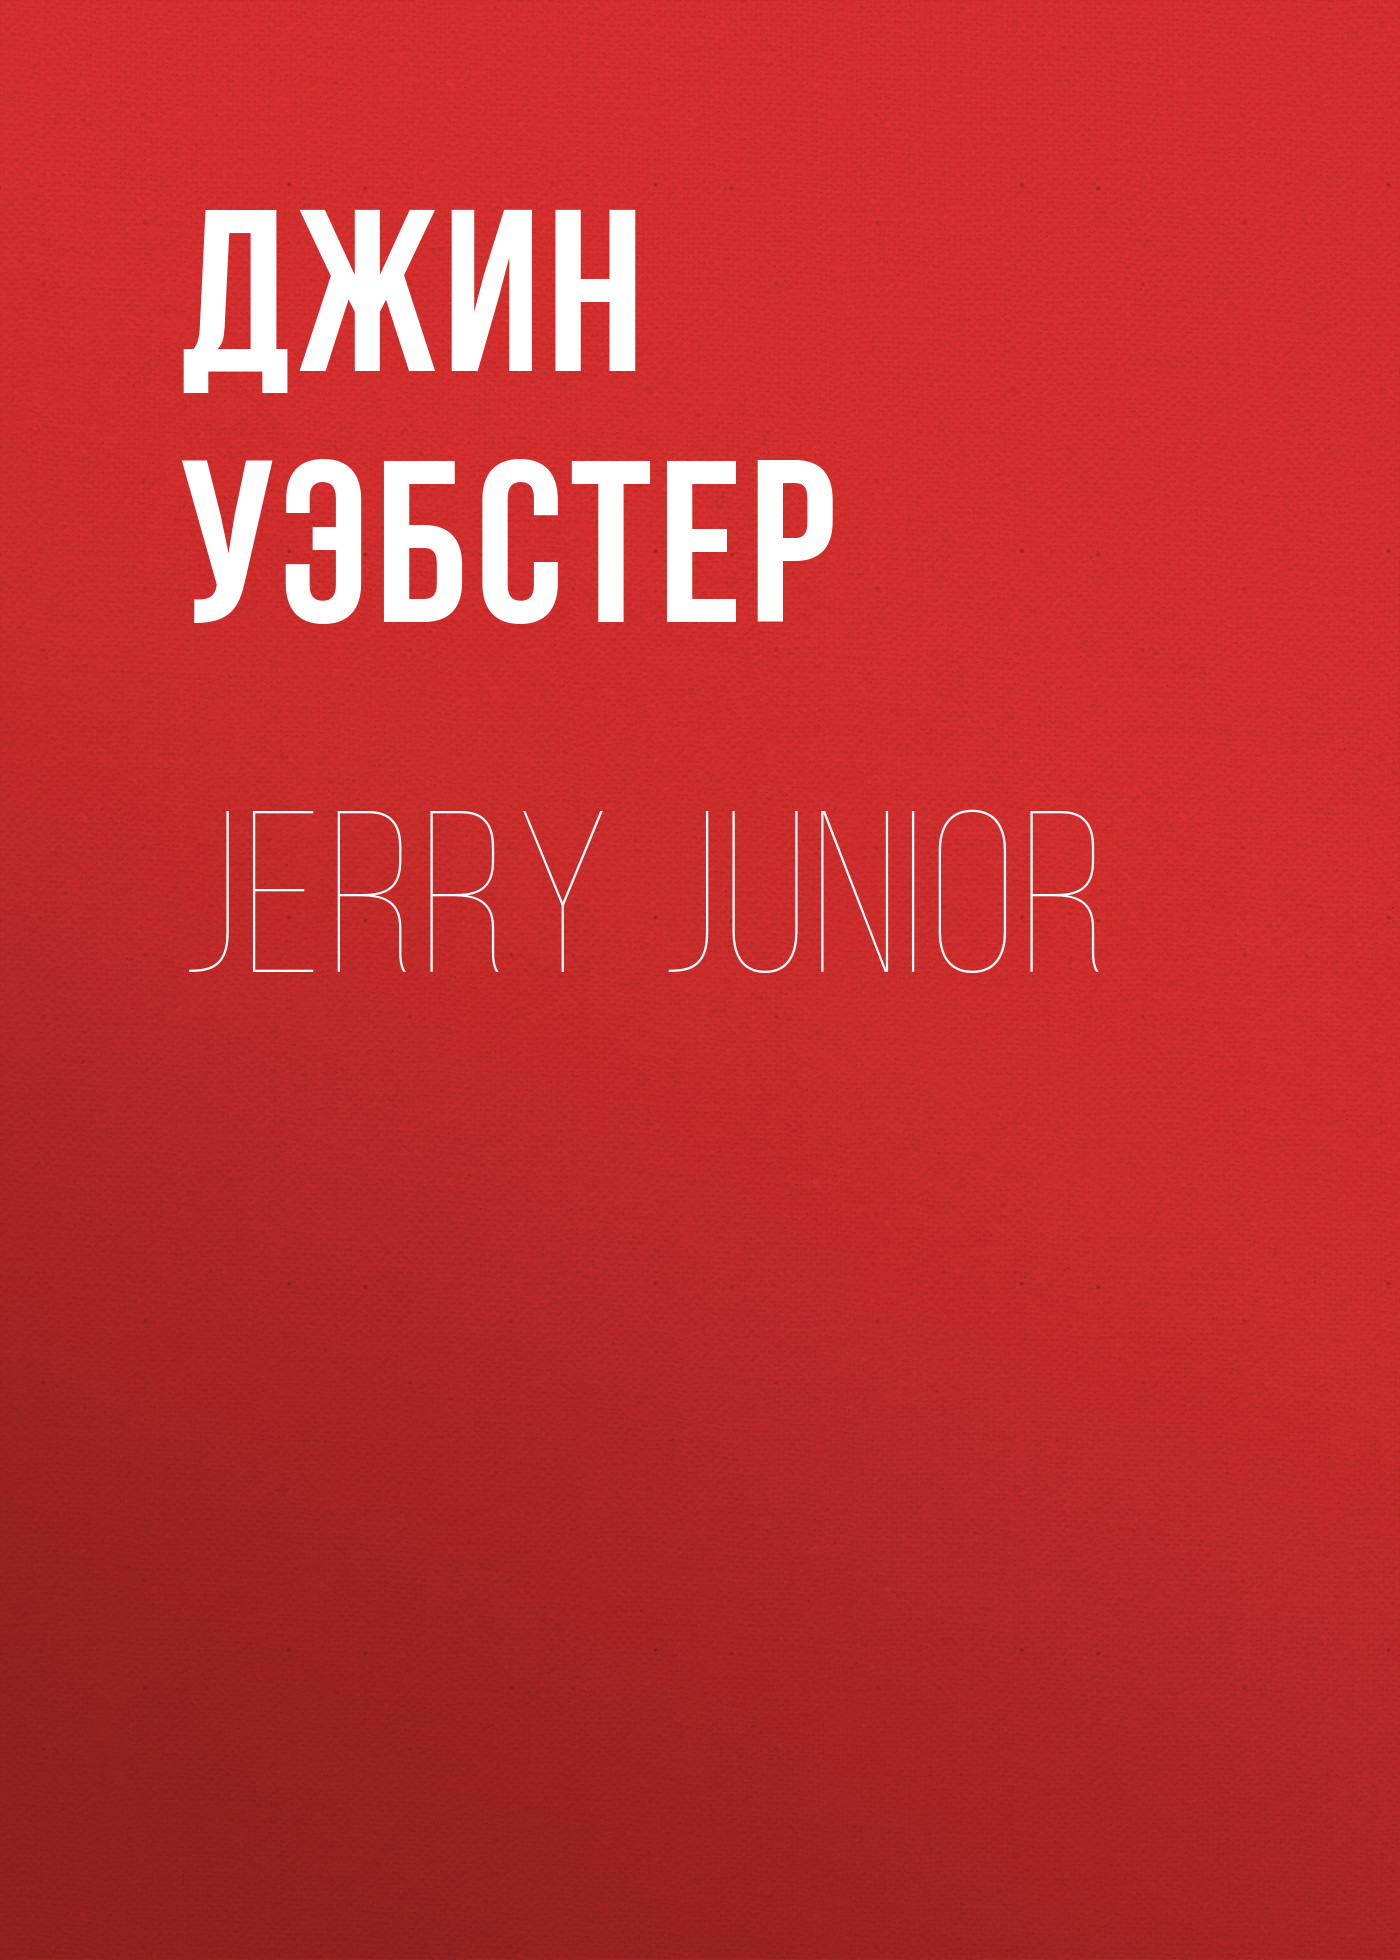 Джин Уэбстер Jerry Junior цена и фото